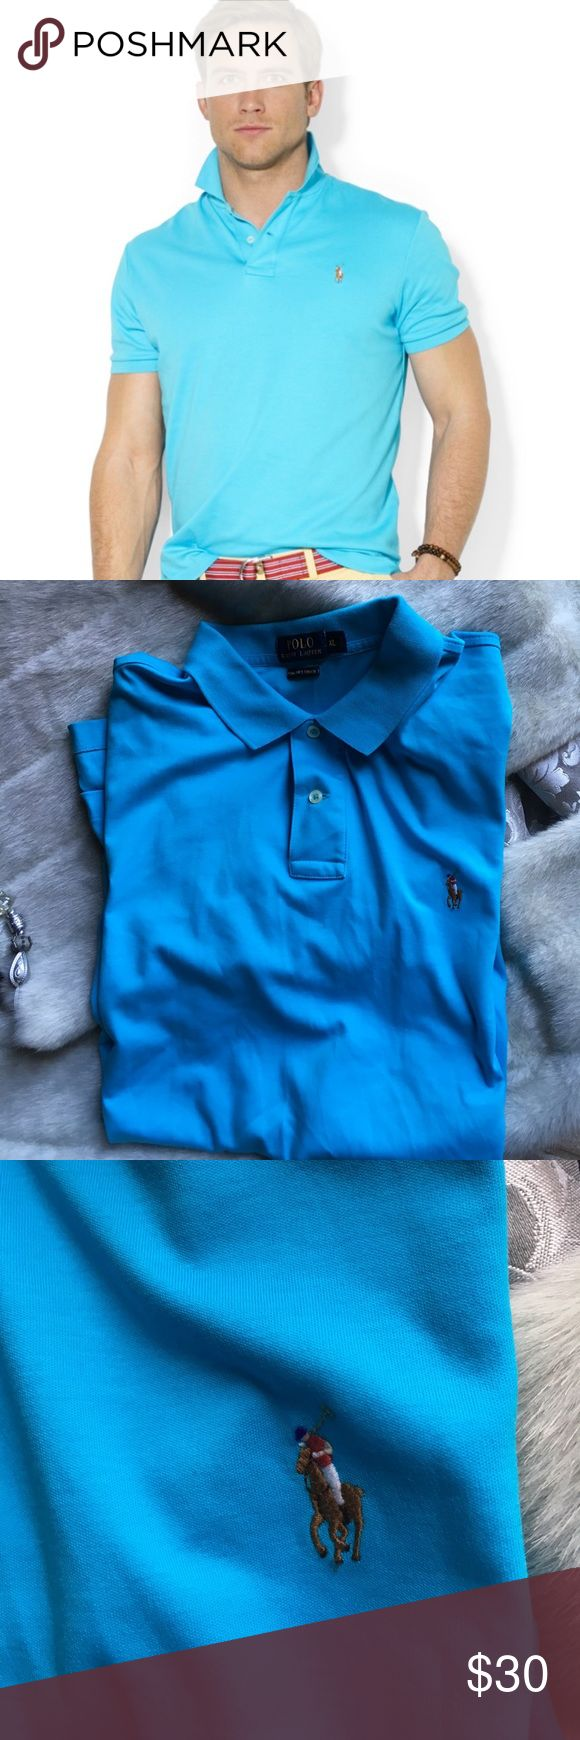 Polo Ralph Lauren Pima  soft touch aquamarine  XL Polo Ralph Lauren Pima  soft touch aquamarine blue men's sz XL From Polo Ralph Lauren, this polo shirt features: Ribbed polo collar. Short sleeves with ribbed armbands. Ralph Lauren's multi-colored signature embroidered pony at the left chest. Two-button placket. Tennis tail. 100%. cotton. Machine wash Polo by Ralph Lauren Shirts Polos